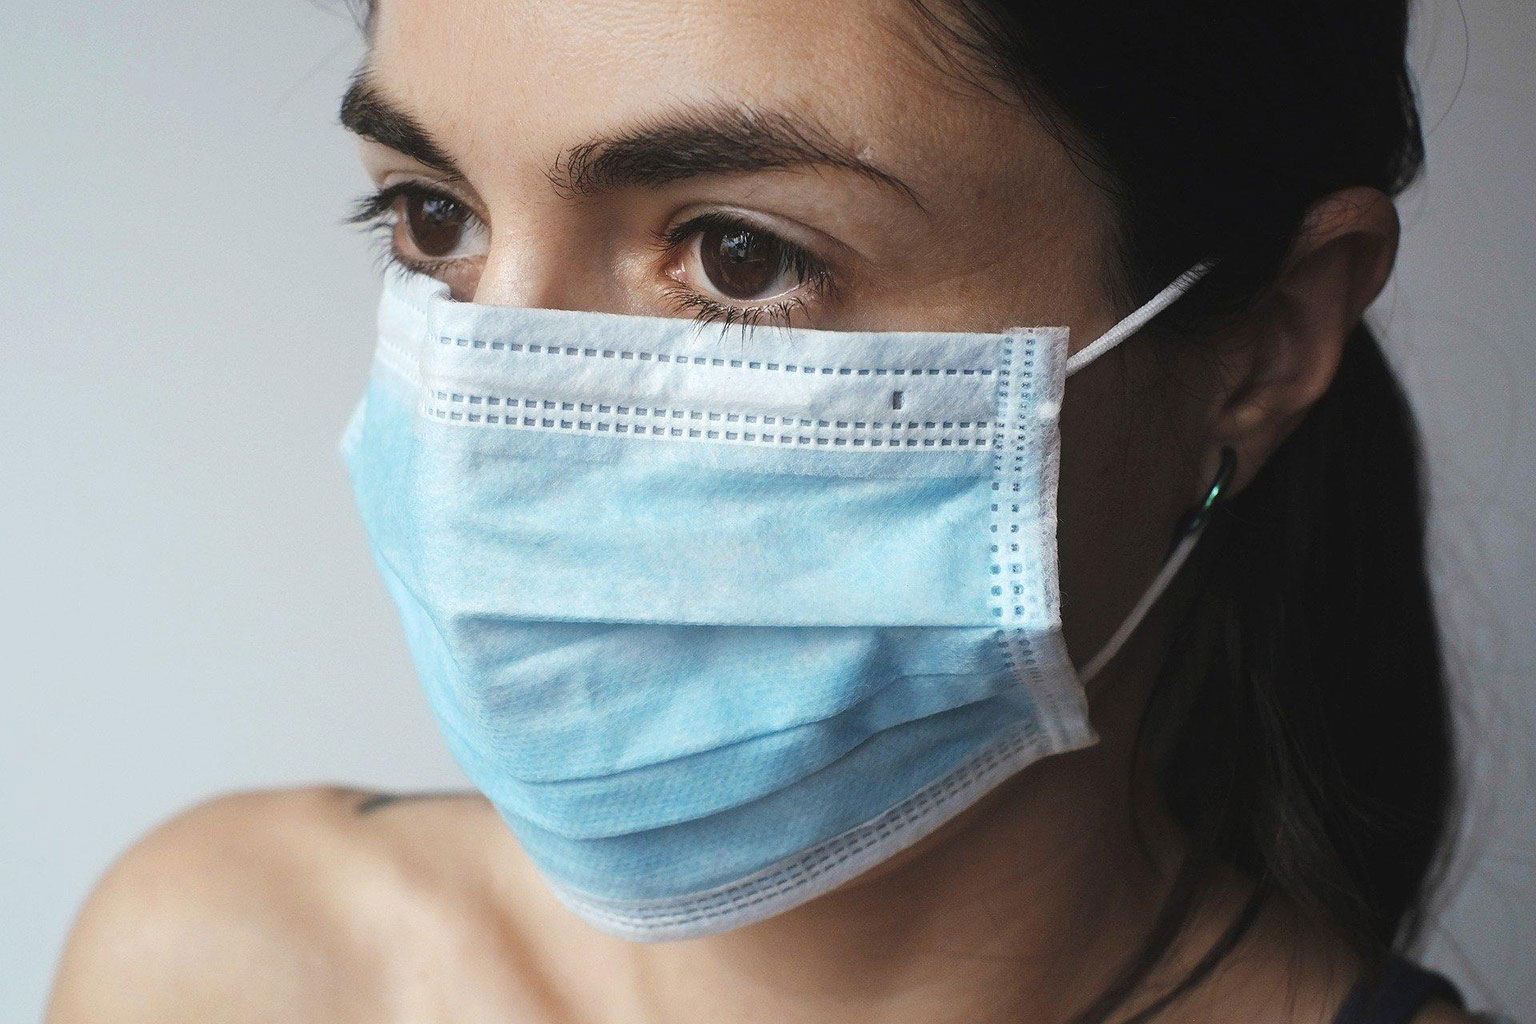 Eye Issues Plaguing Mask Wearers